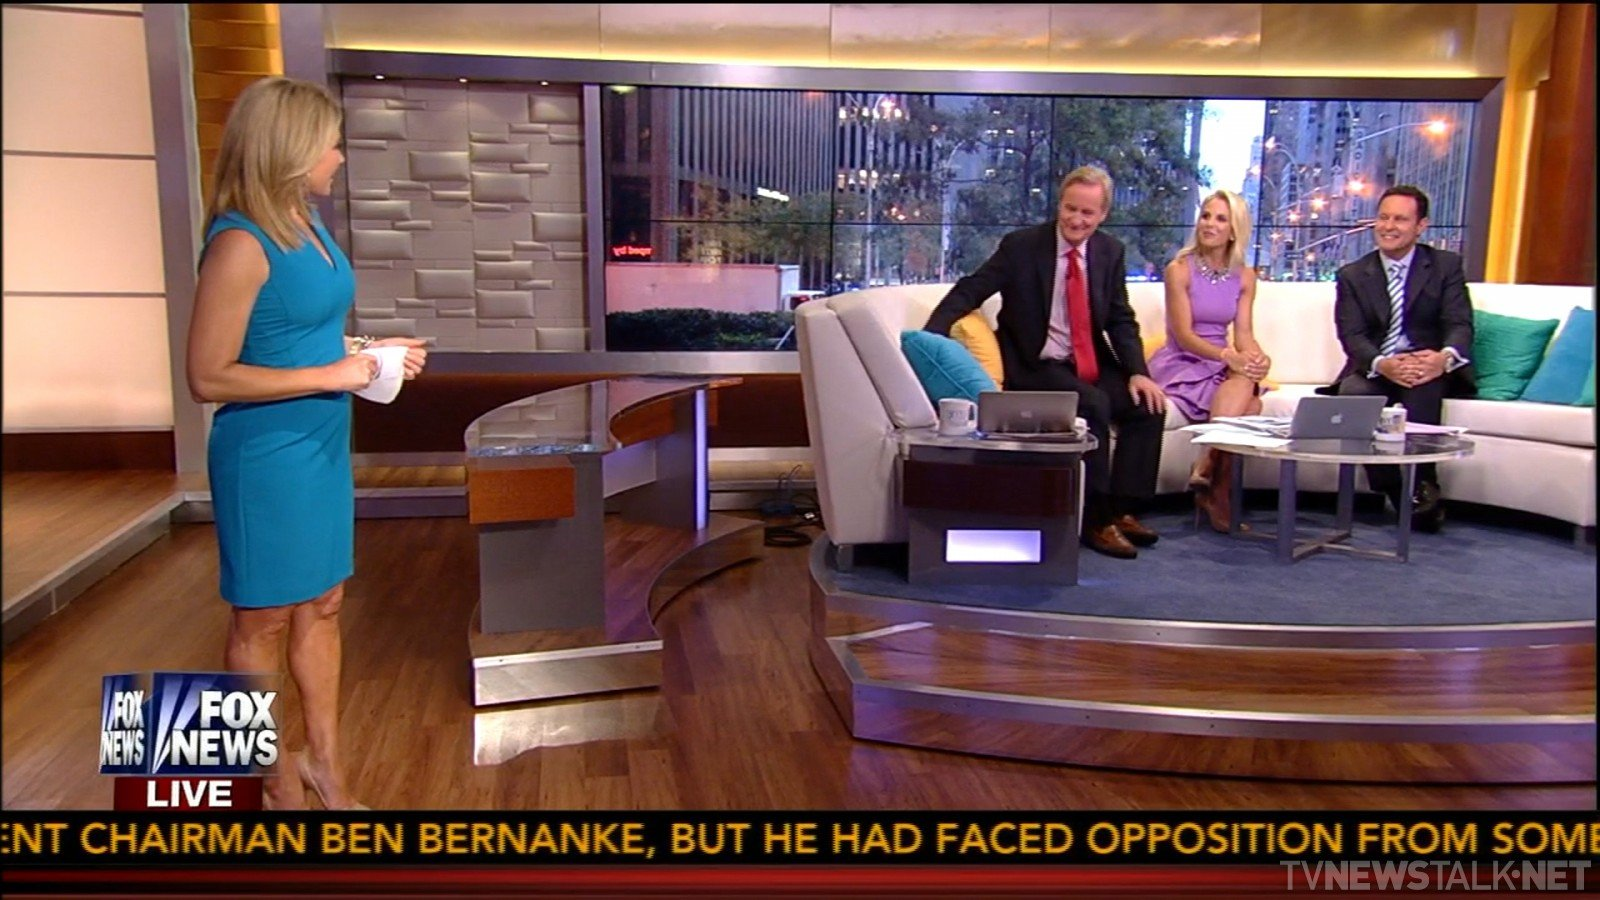 Couch toss to news